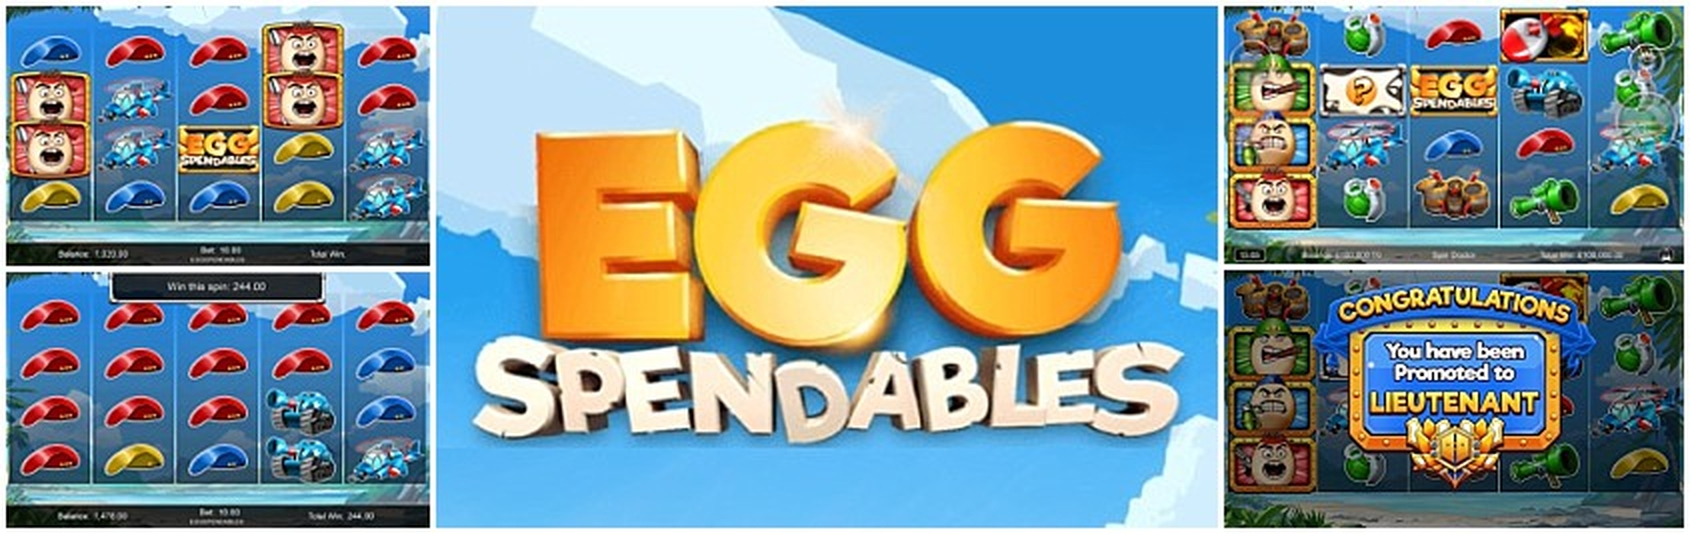 The Eggspendables Online Slot Demo Game by Incredible Technologies